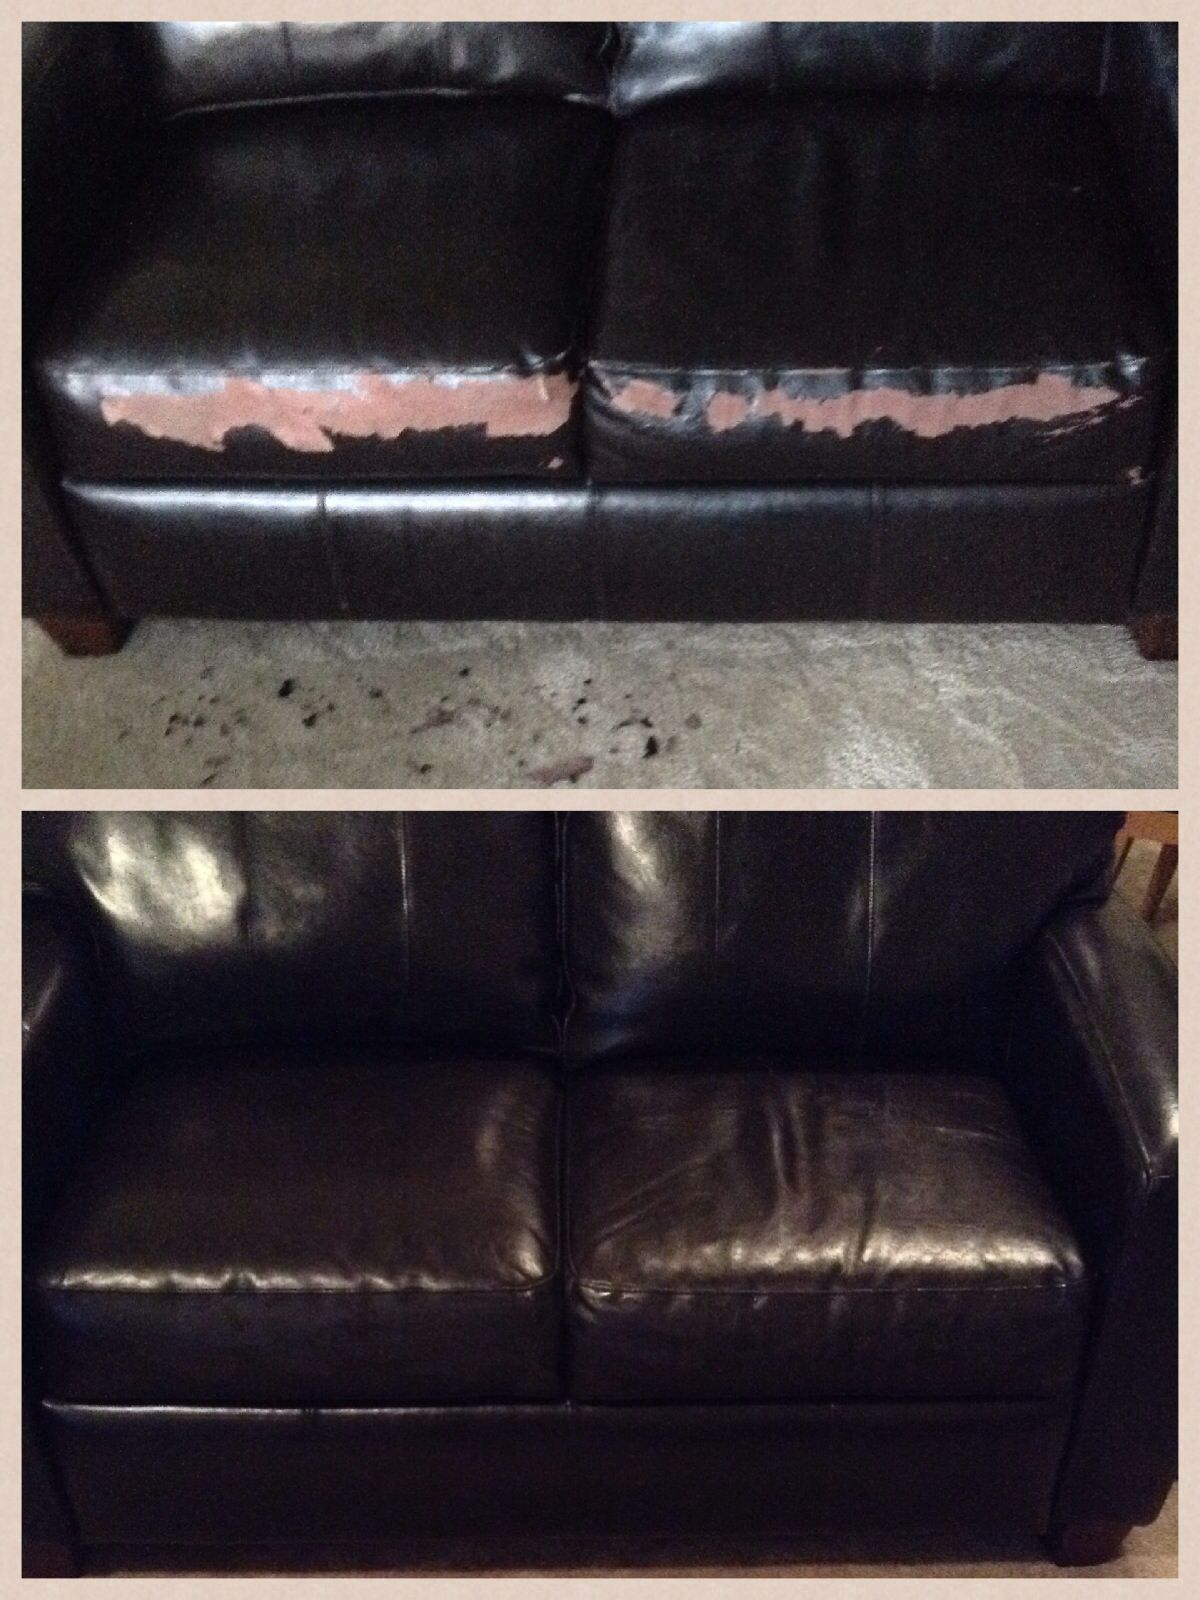 How to Fix a Peeling Leather Couch …